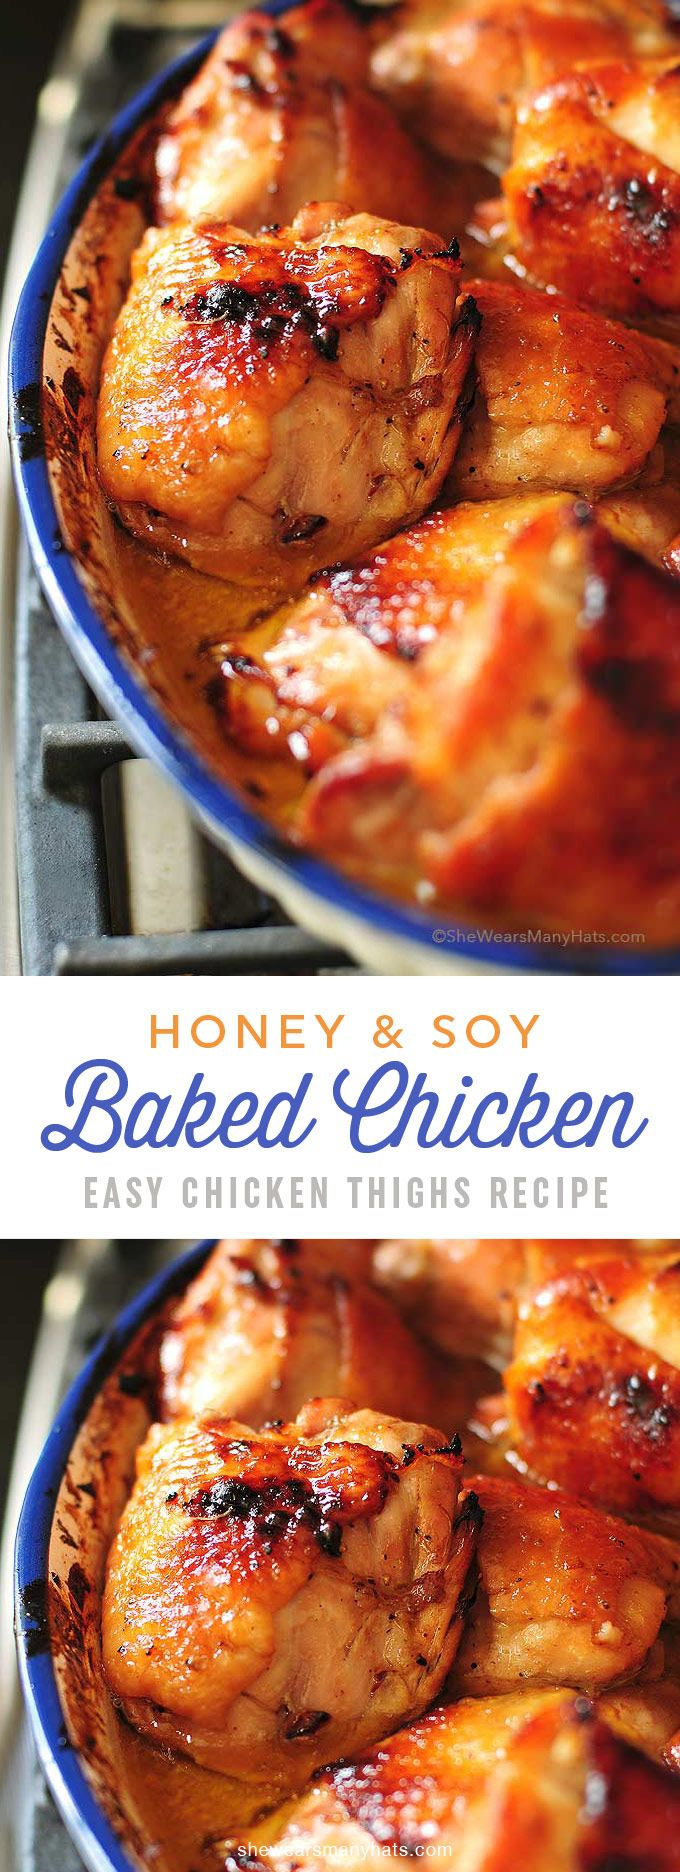 Honey Soy Baked Chicken Thighs Recipe - She Wears Many Hats